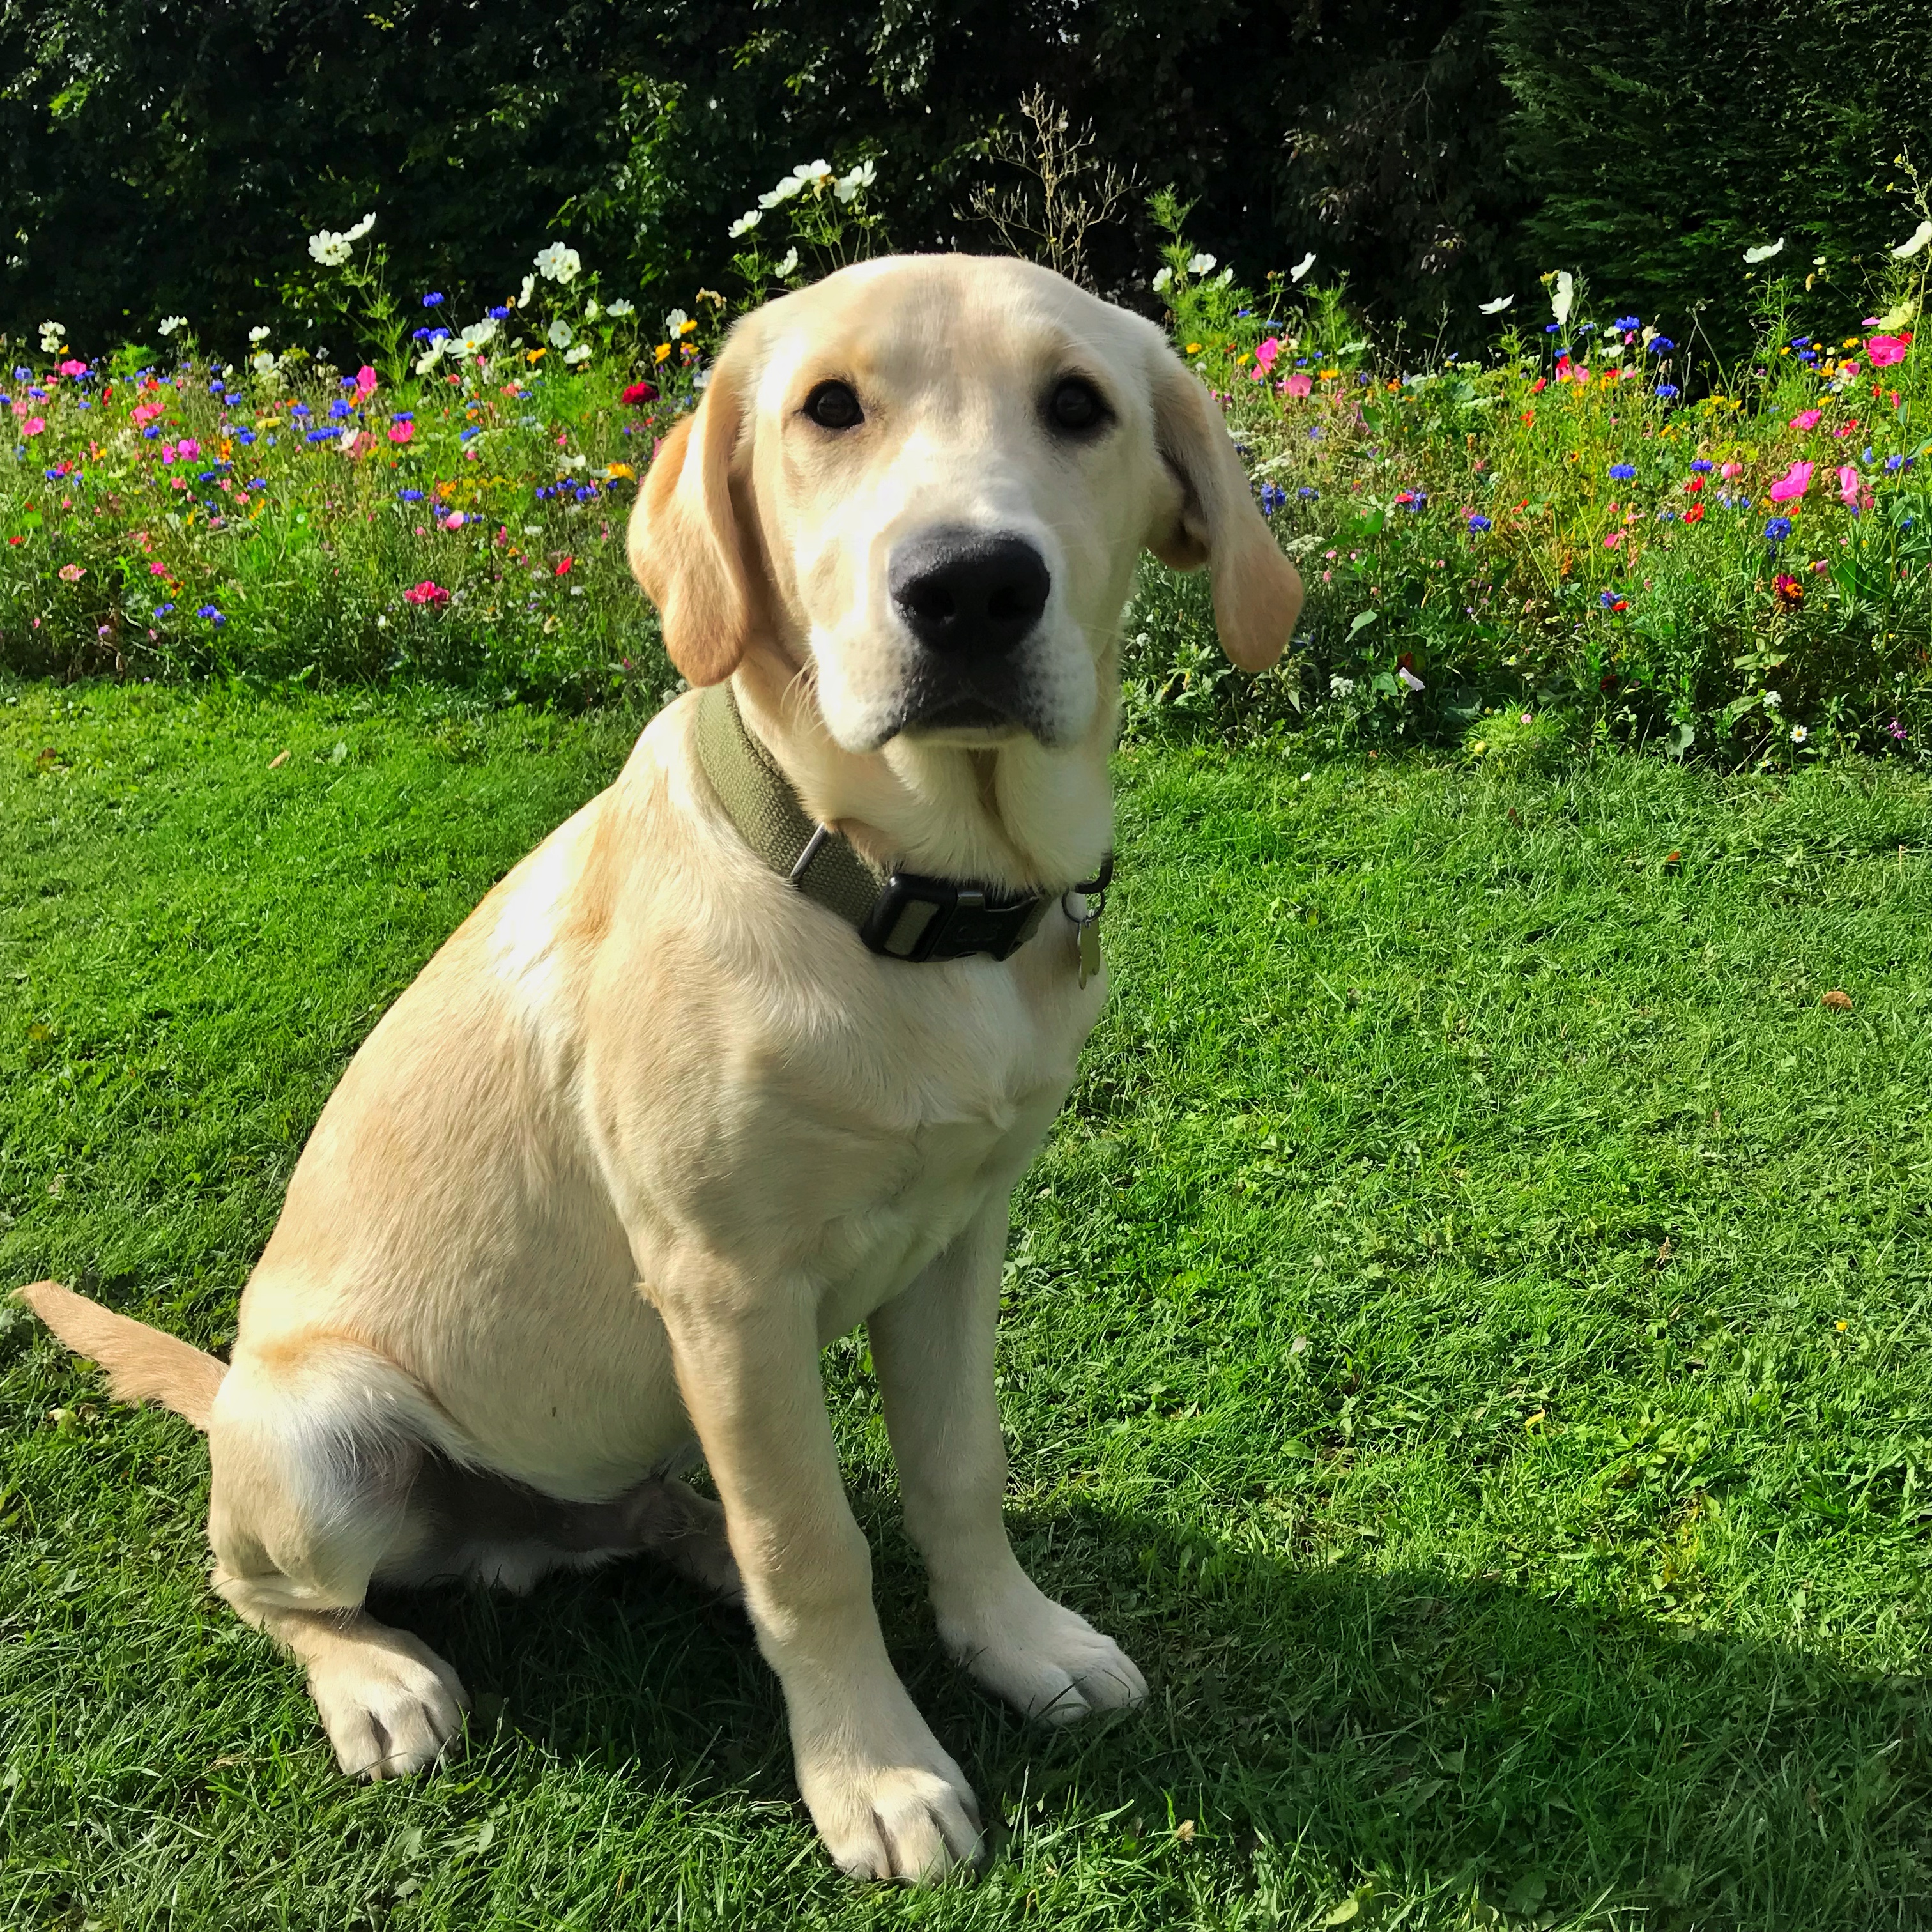 Choosing a puppy. A much bigger yellow labrador Hendrix sitting smartly in front of a border of wild flowers!